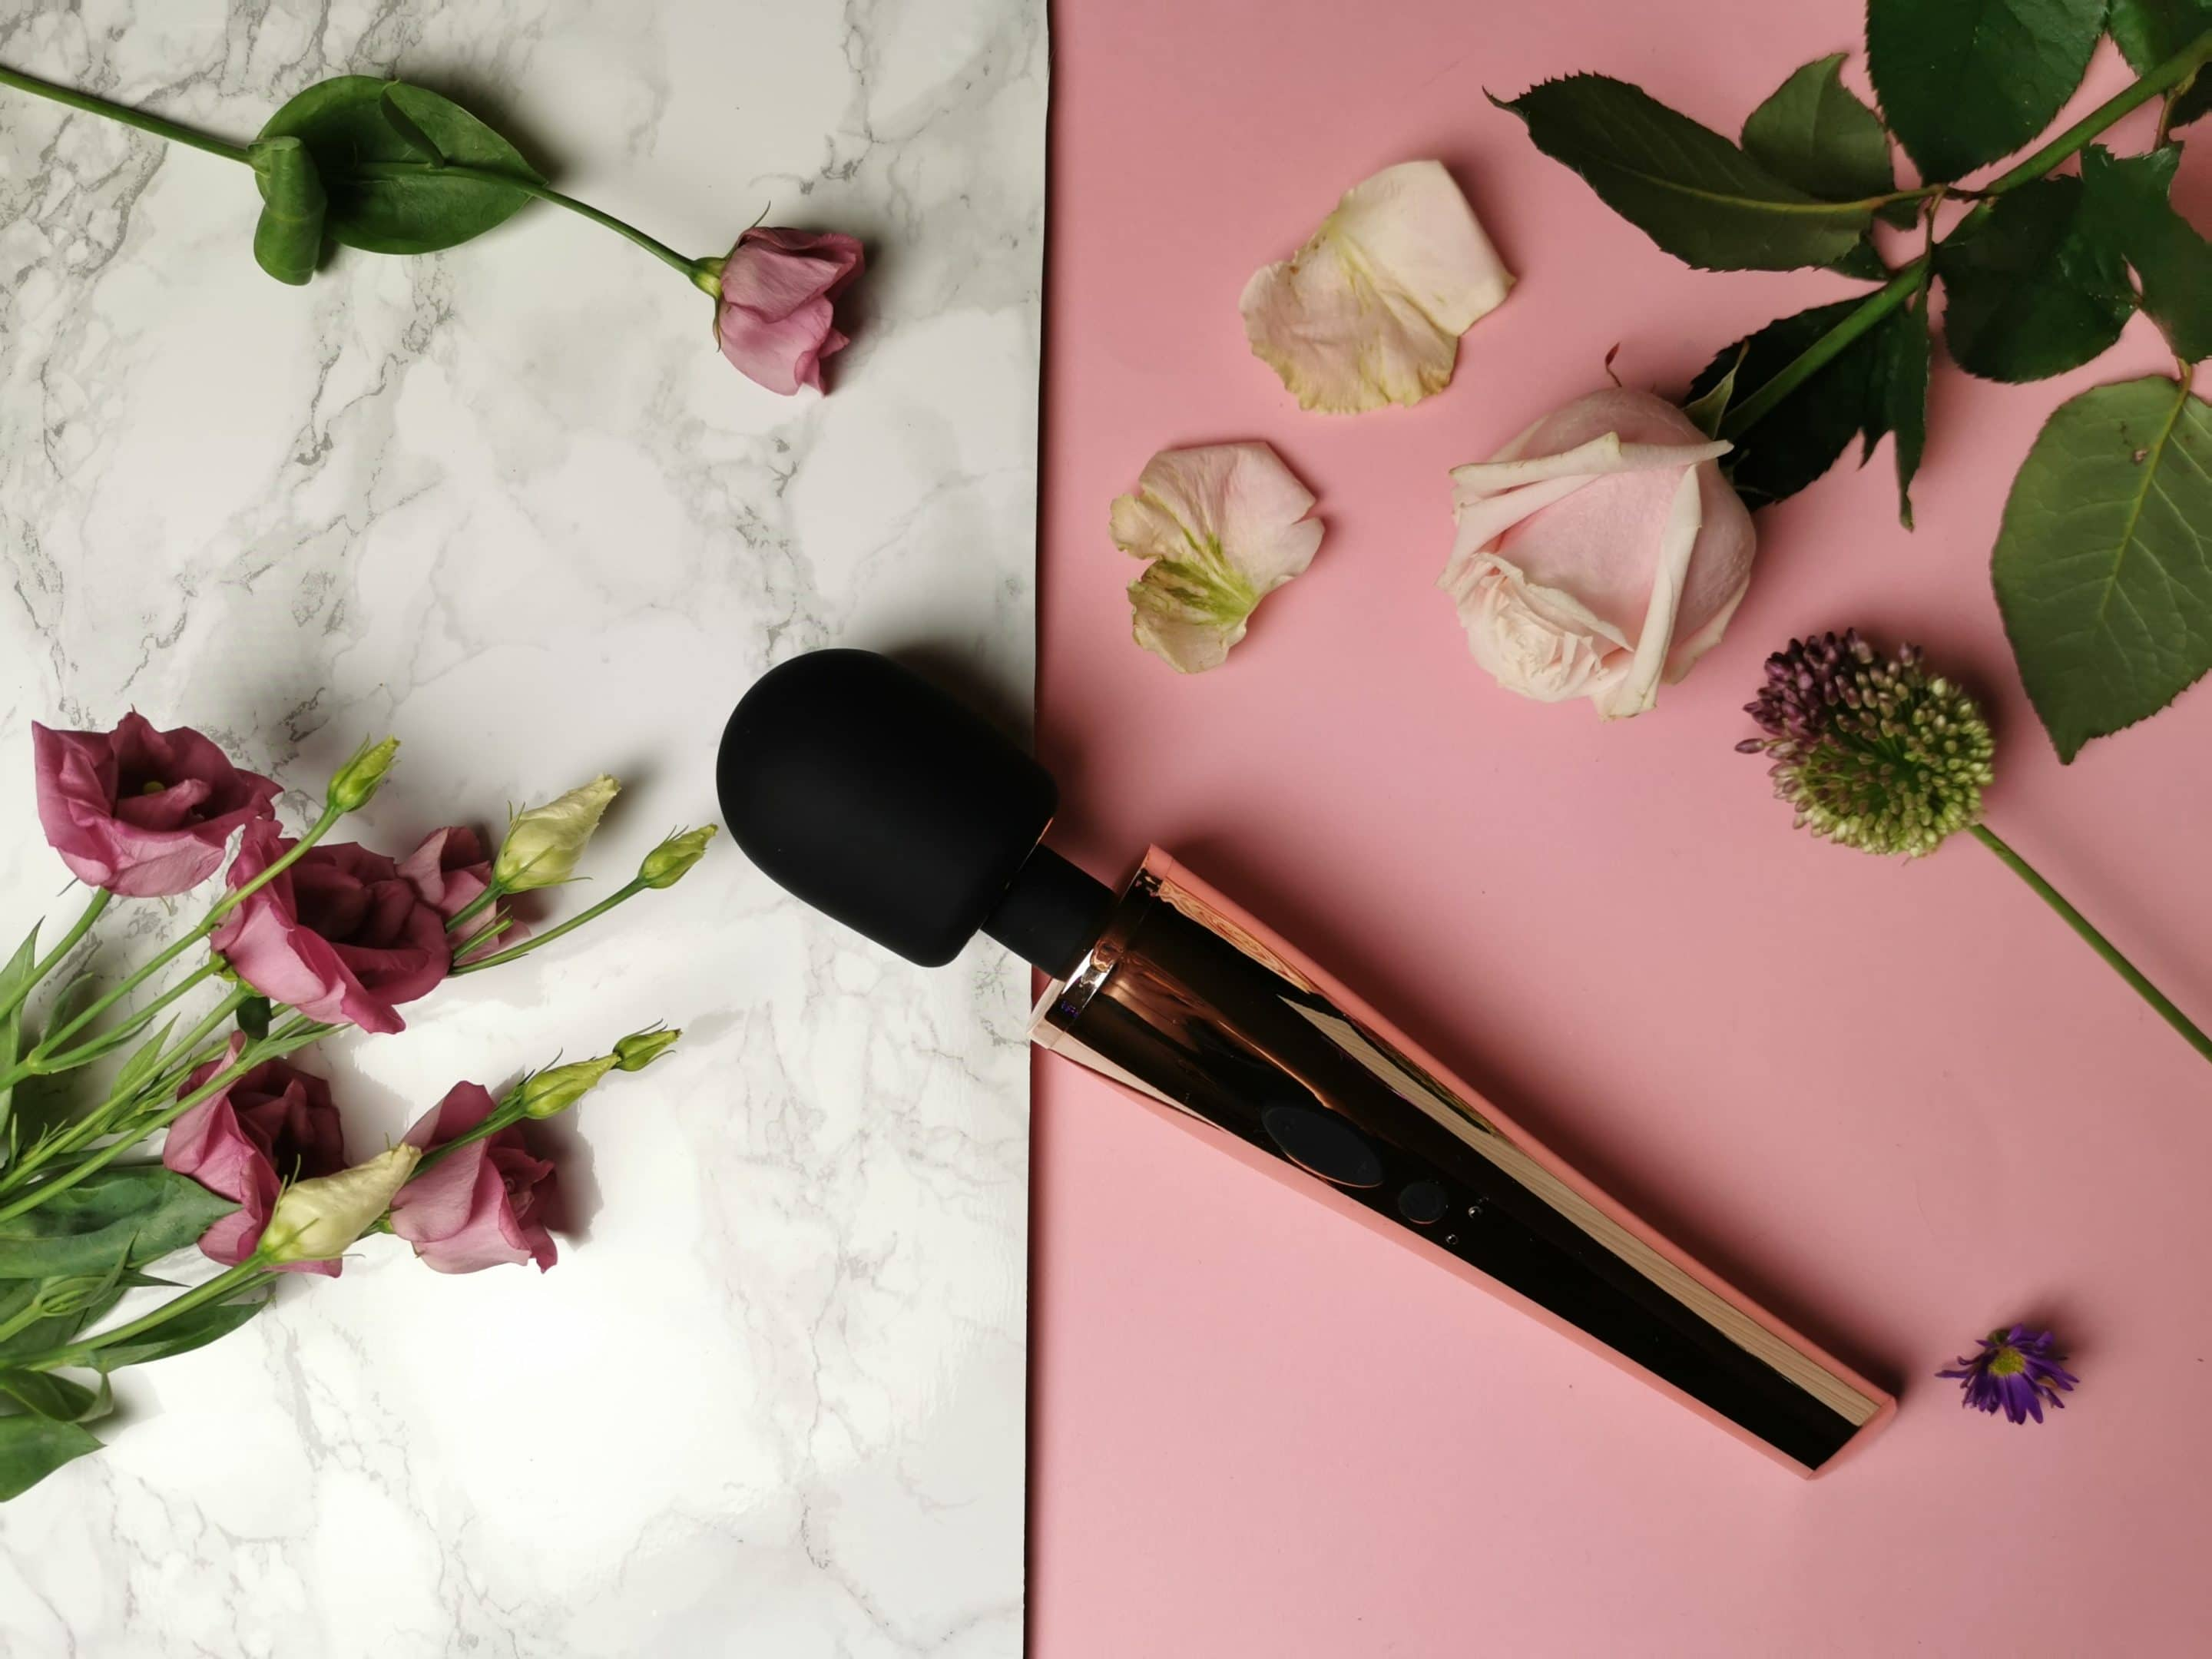 Sekstoy review: Rosy Gold Nouveau Wand Massager